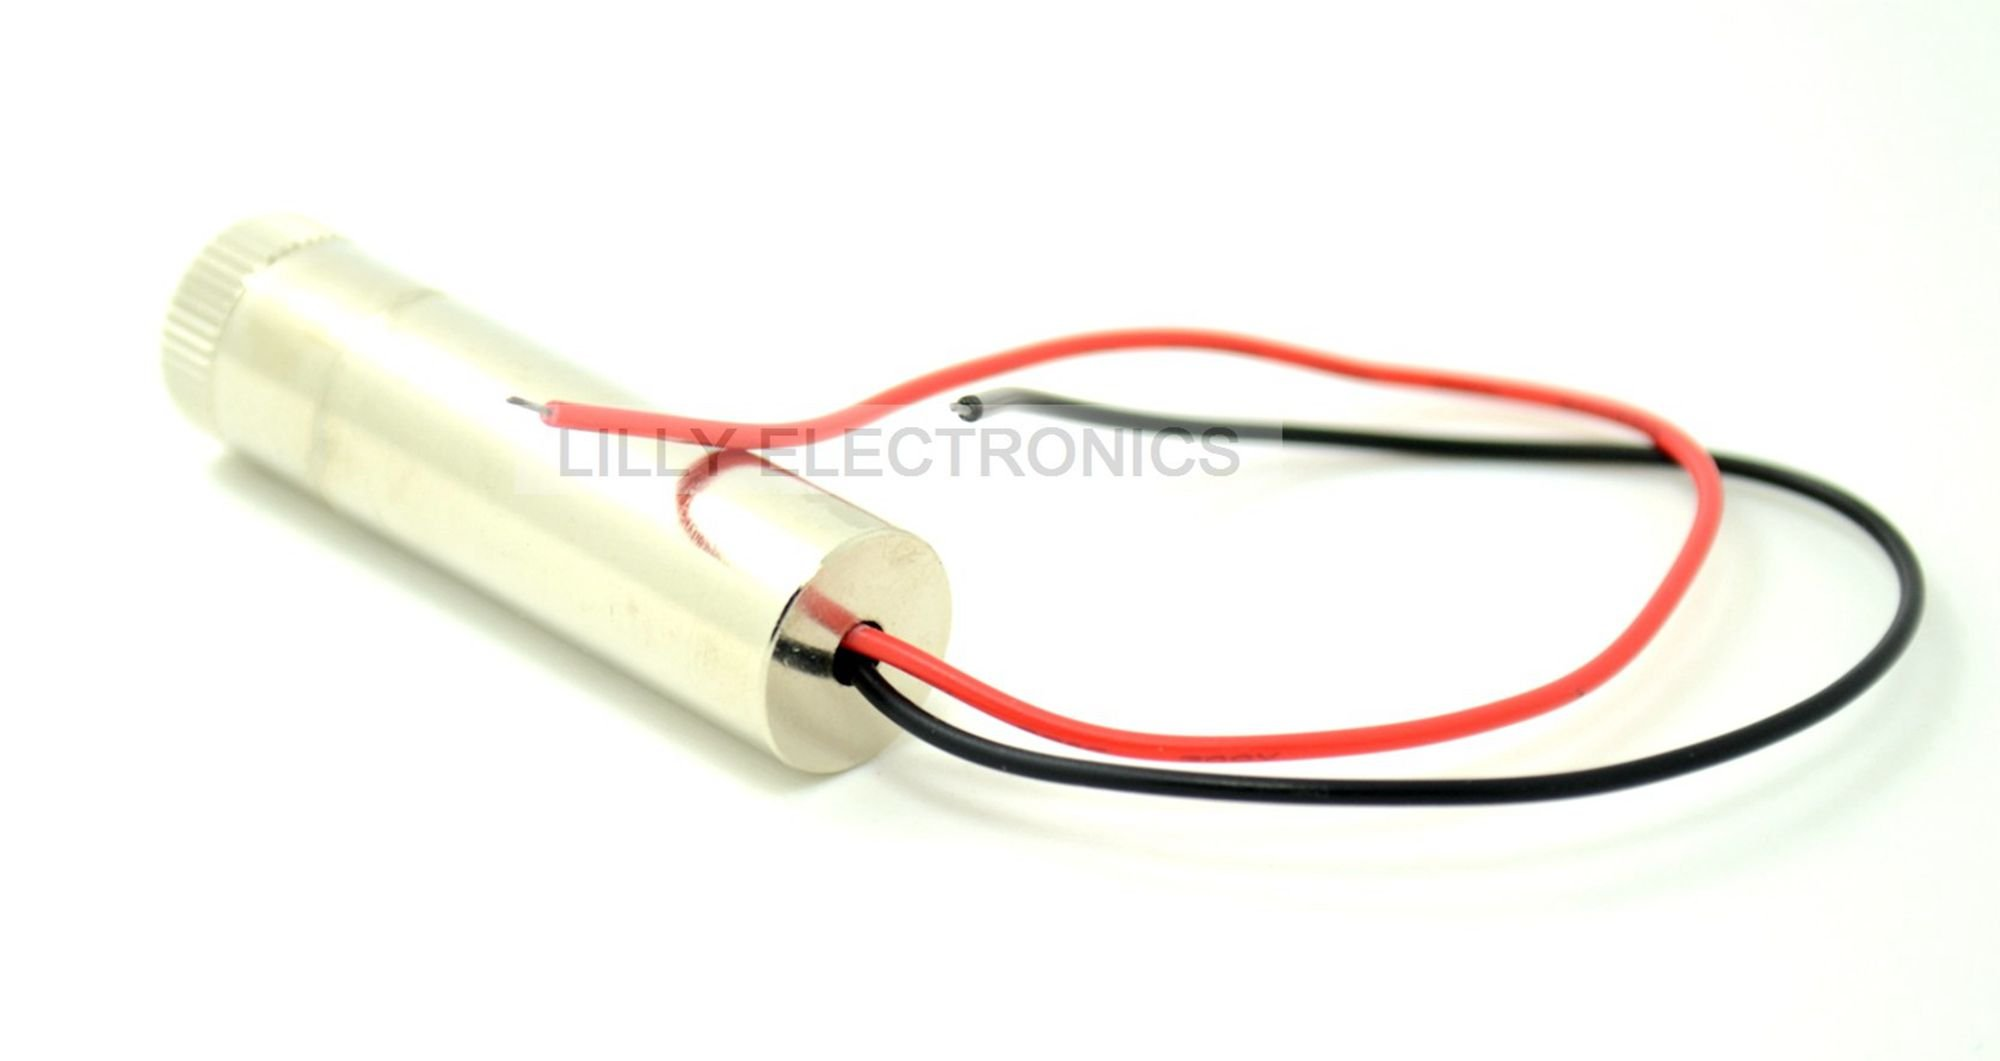 Adjusted Red Diode Lasers 650nm 150mw Dot/Line/Cross LED Module w/Heatsink & Driver In by Q-BAIHE